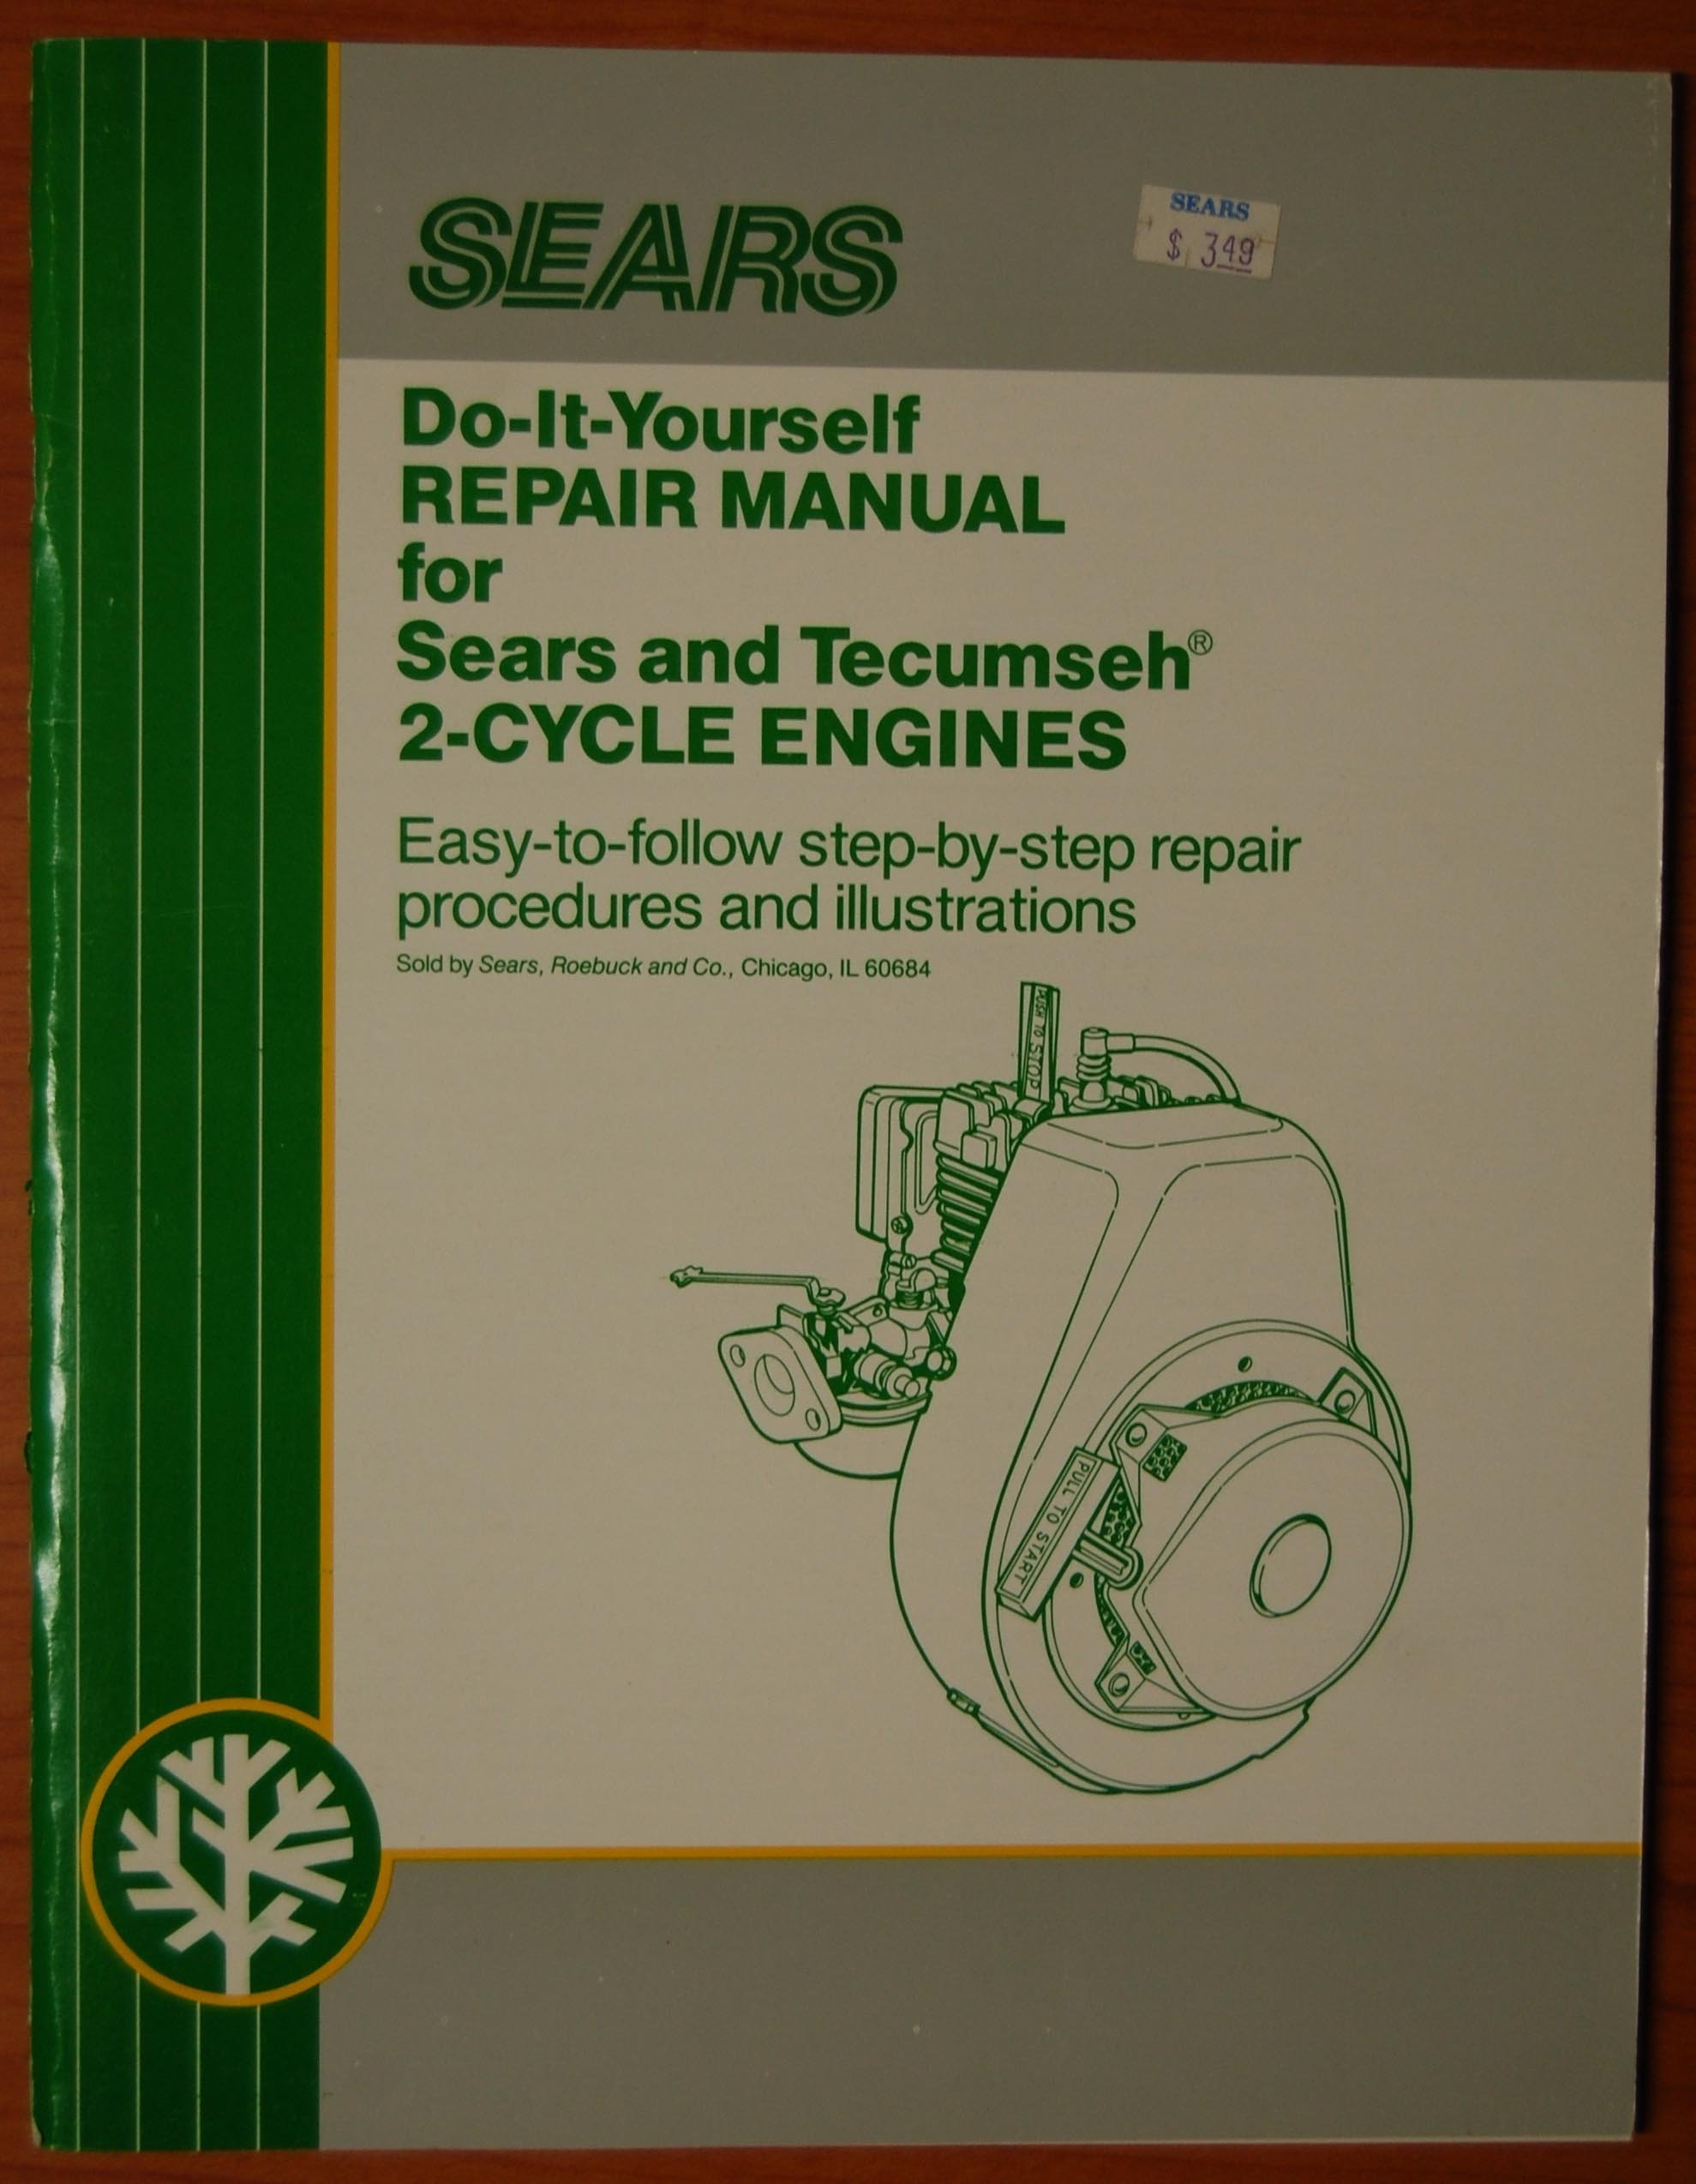 Sears do it yourself repair manual for sears and tecumseh 2 cycle sears do it yourself repair manual for sears and tecumseh 2 cycle engines sears amazon books solutioingenieria Image collections